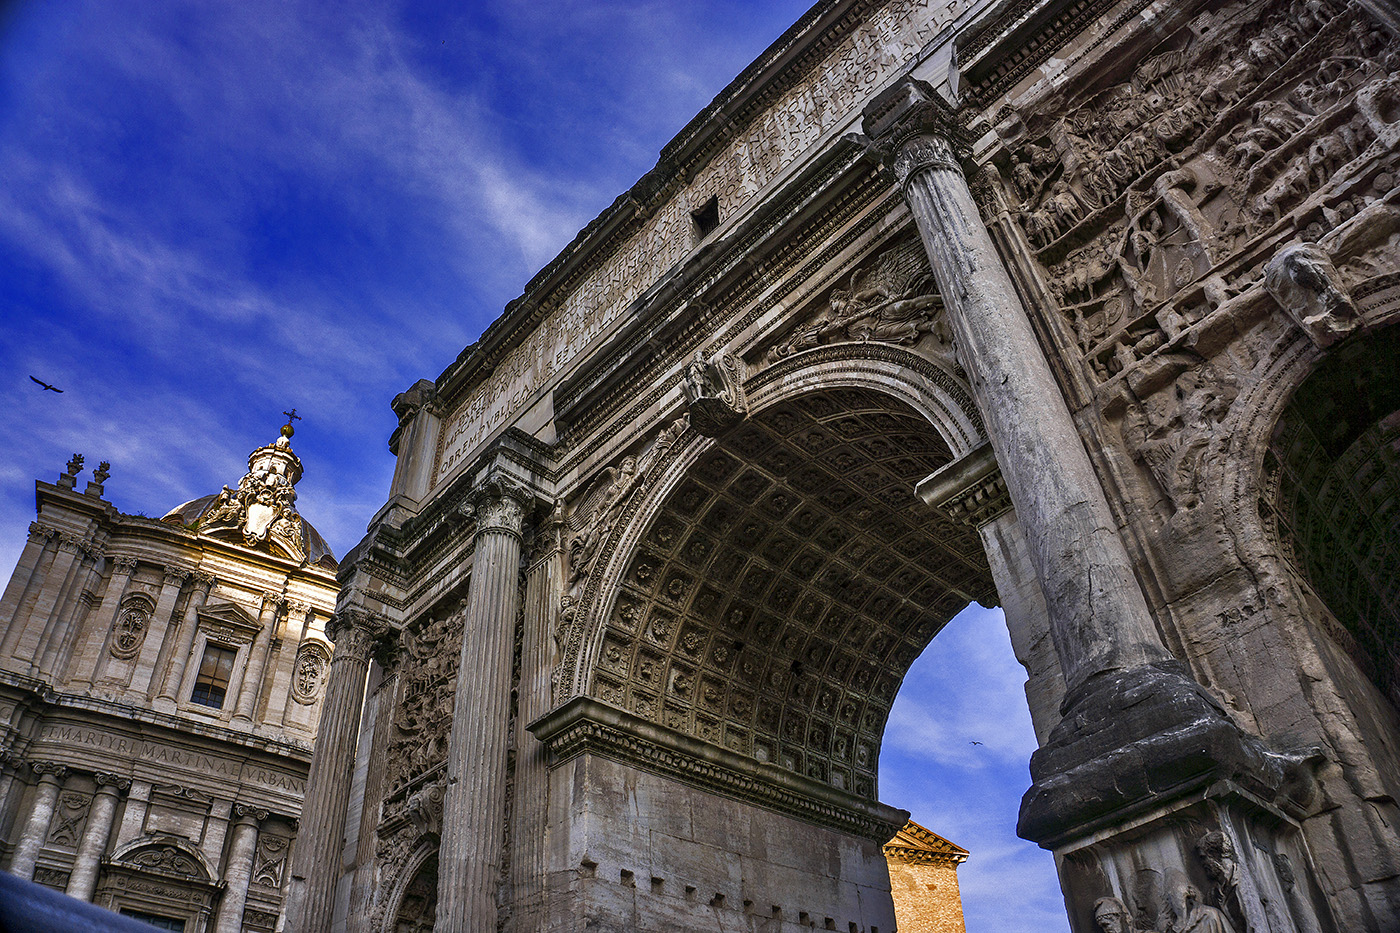 Arch of Septimus Severus at the Forum in Rome, Italy